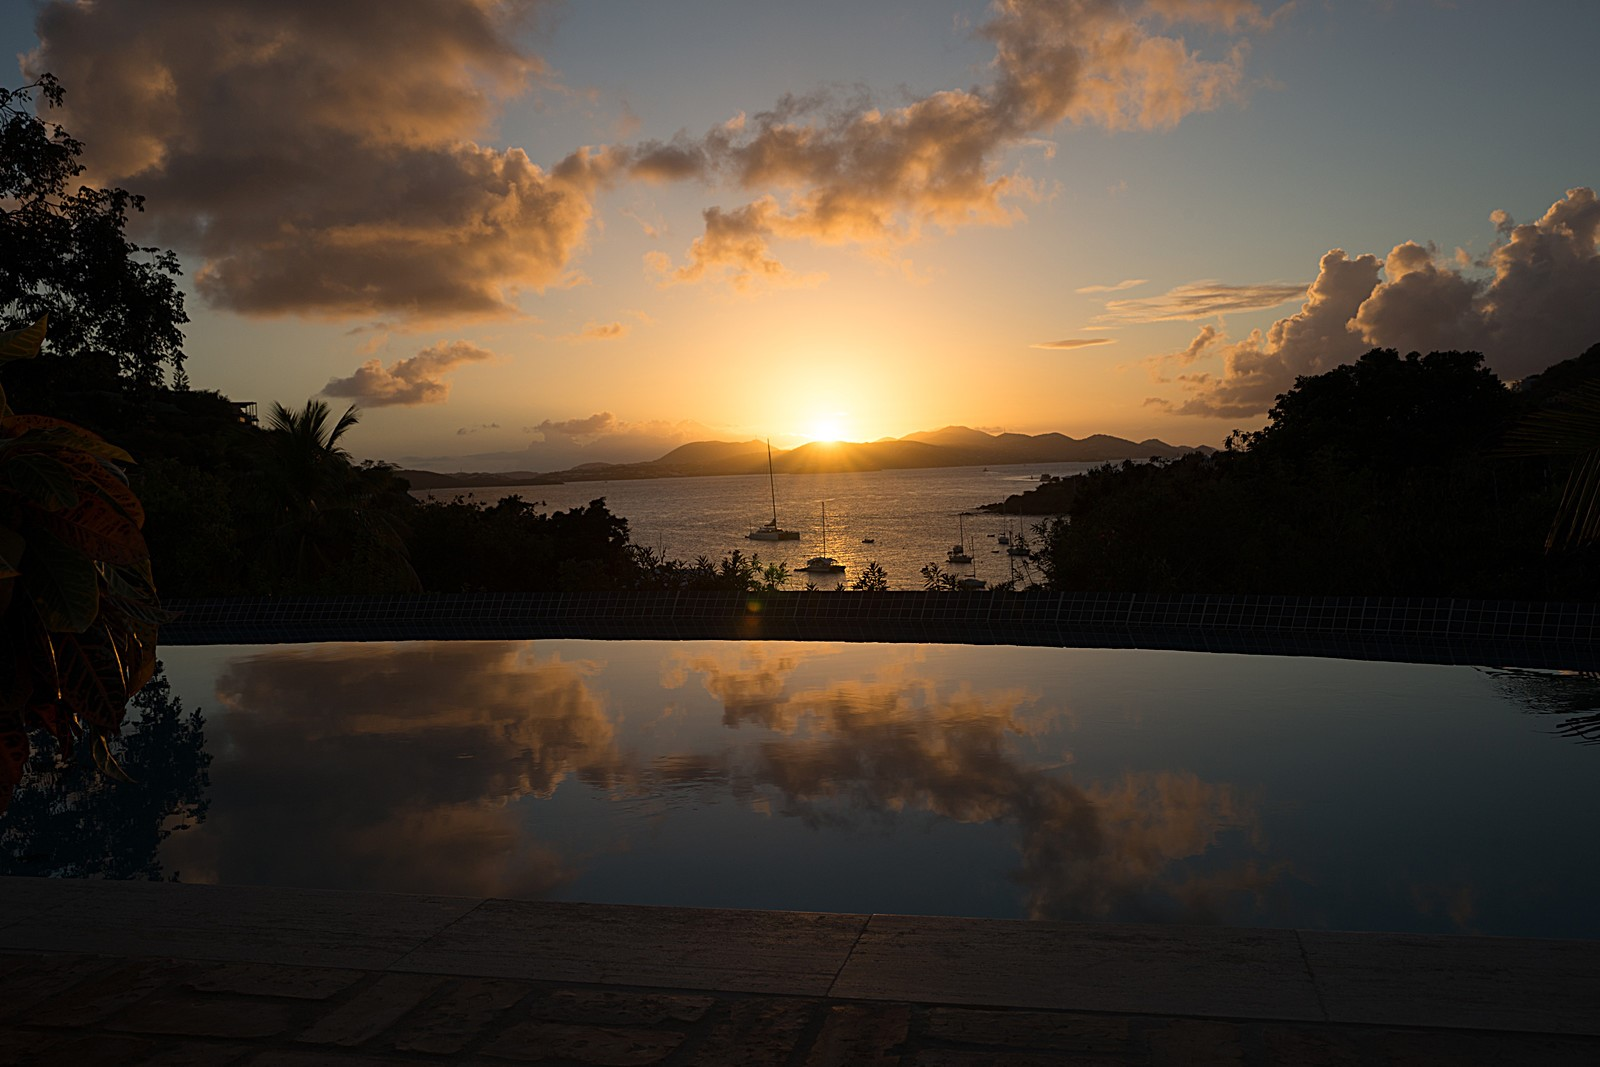 sunset view reflected in pool